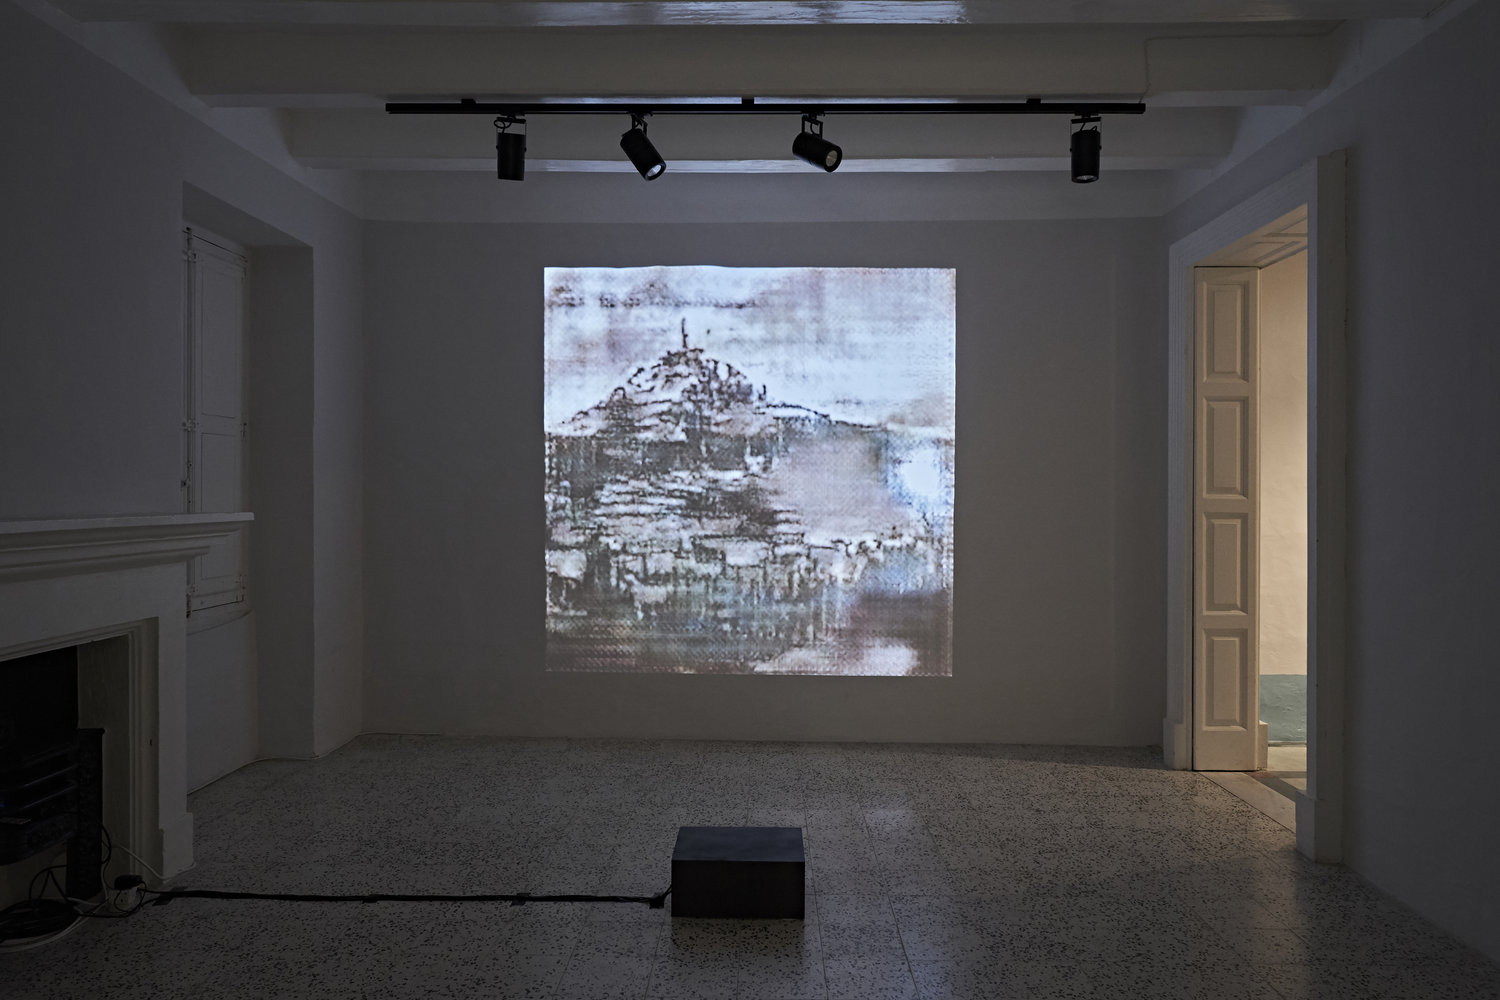 Traces of Things - Traces of Things explores what happens when history is remembered and re-remembered by passing through moments of the past through an artificial intelligence model trained on material from public and private Maltese archives.